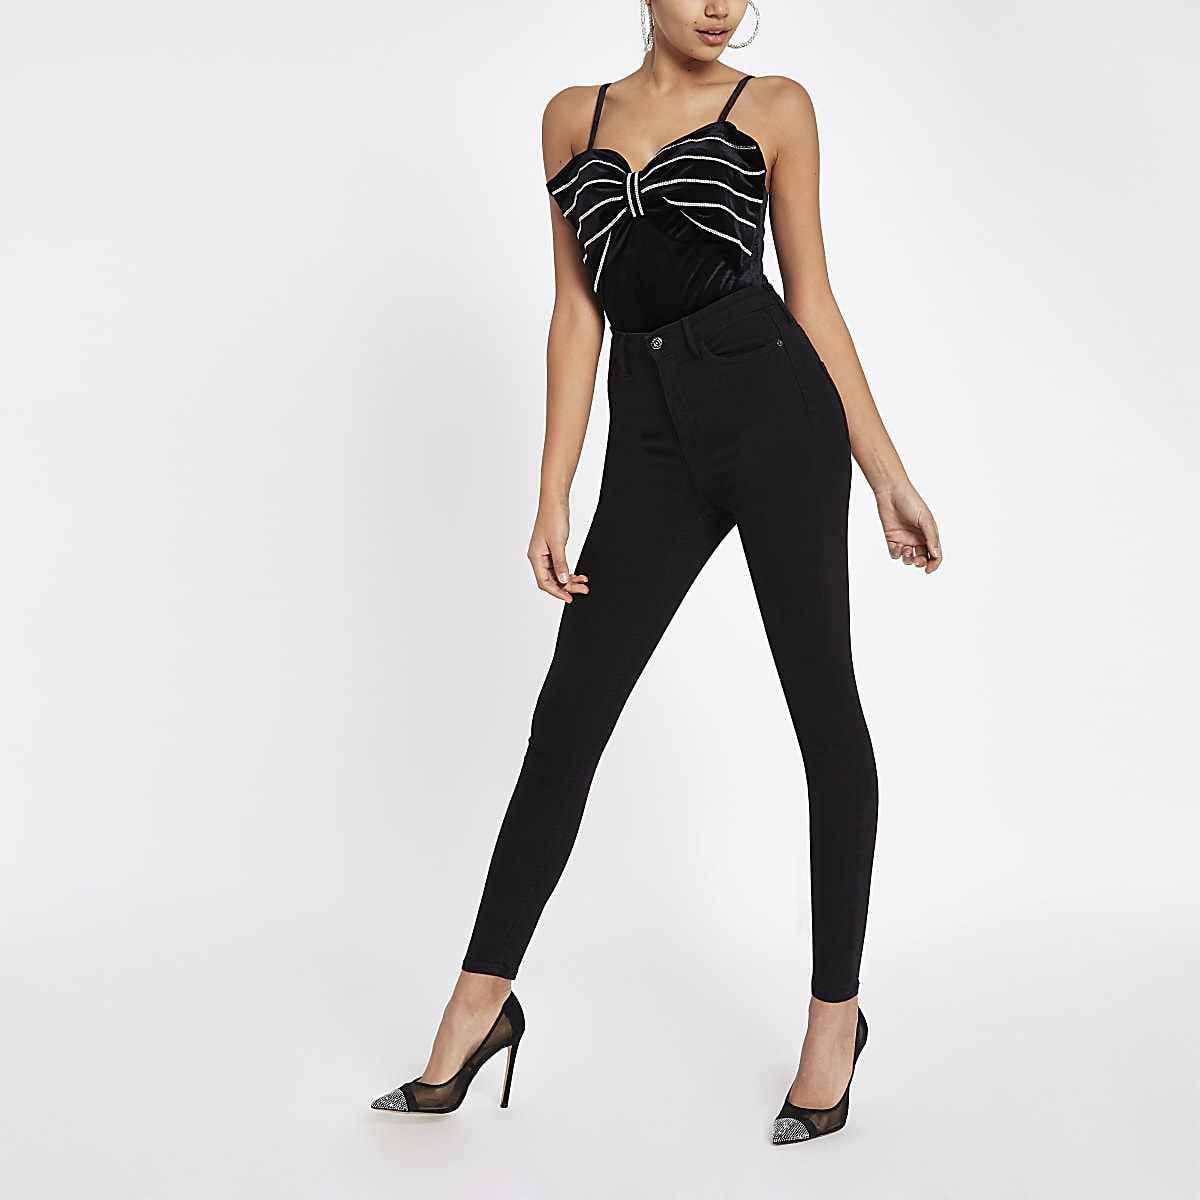 Black diamante bow bodysuit